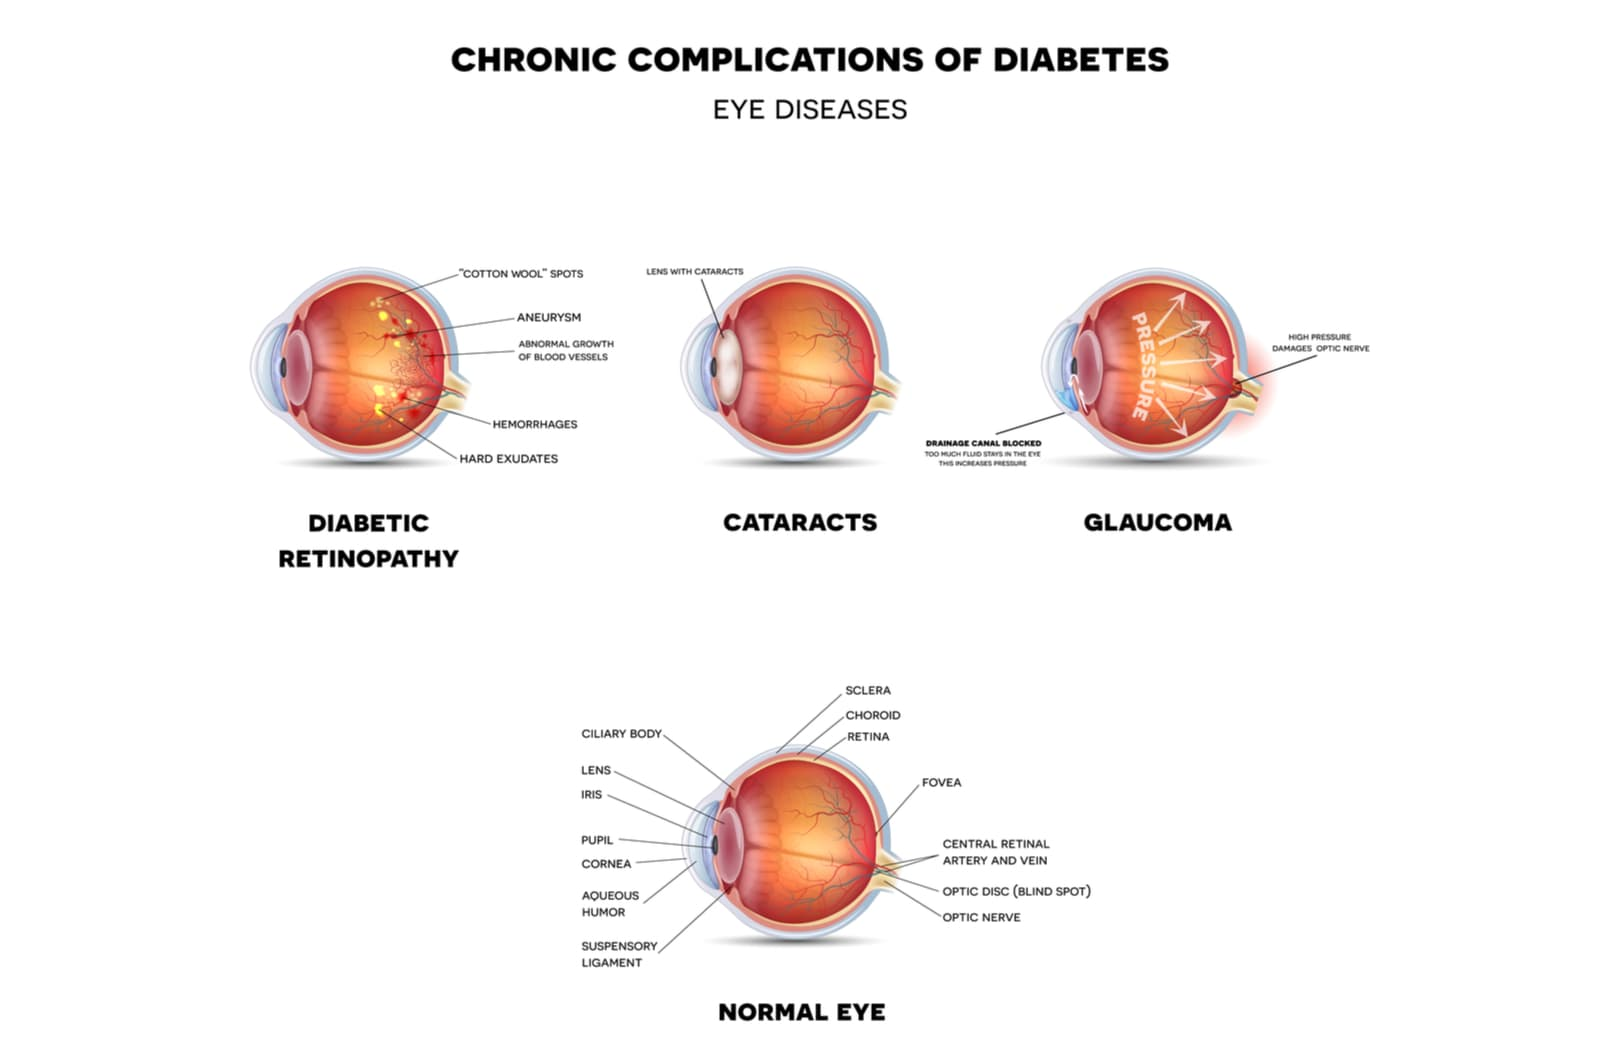 A diagram comparing a normal eye with eyes that have diabetic retinopathy, cataracts, and glaucoma